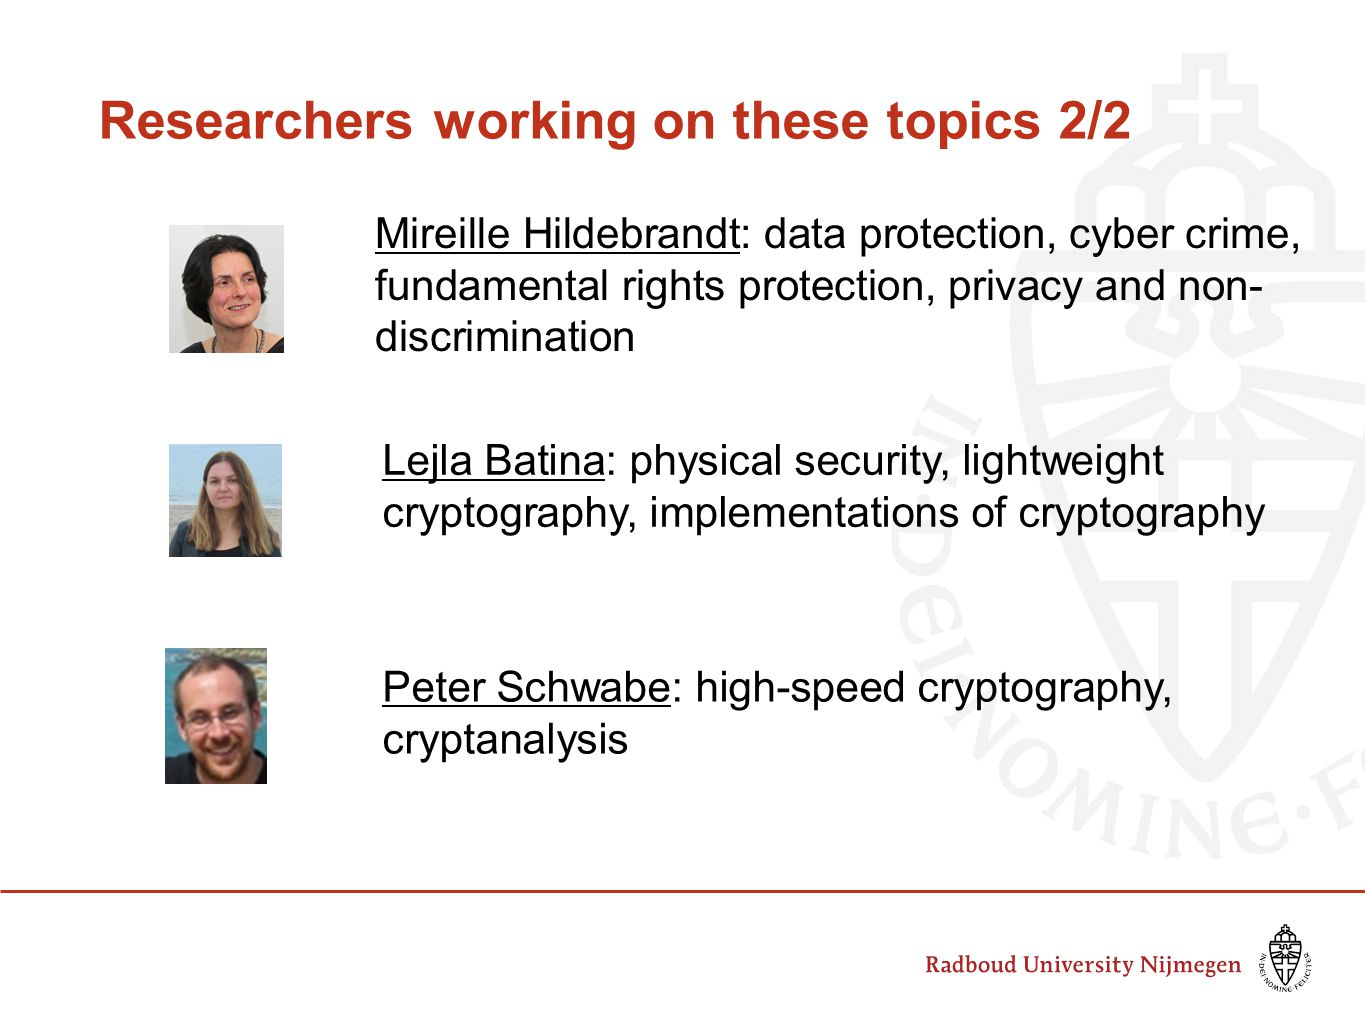 Researchers working on these topics 2/2 Mireille Hildebrandt: data protection, cyber crime, fundamental rights protection, privacy and non- discrimina